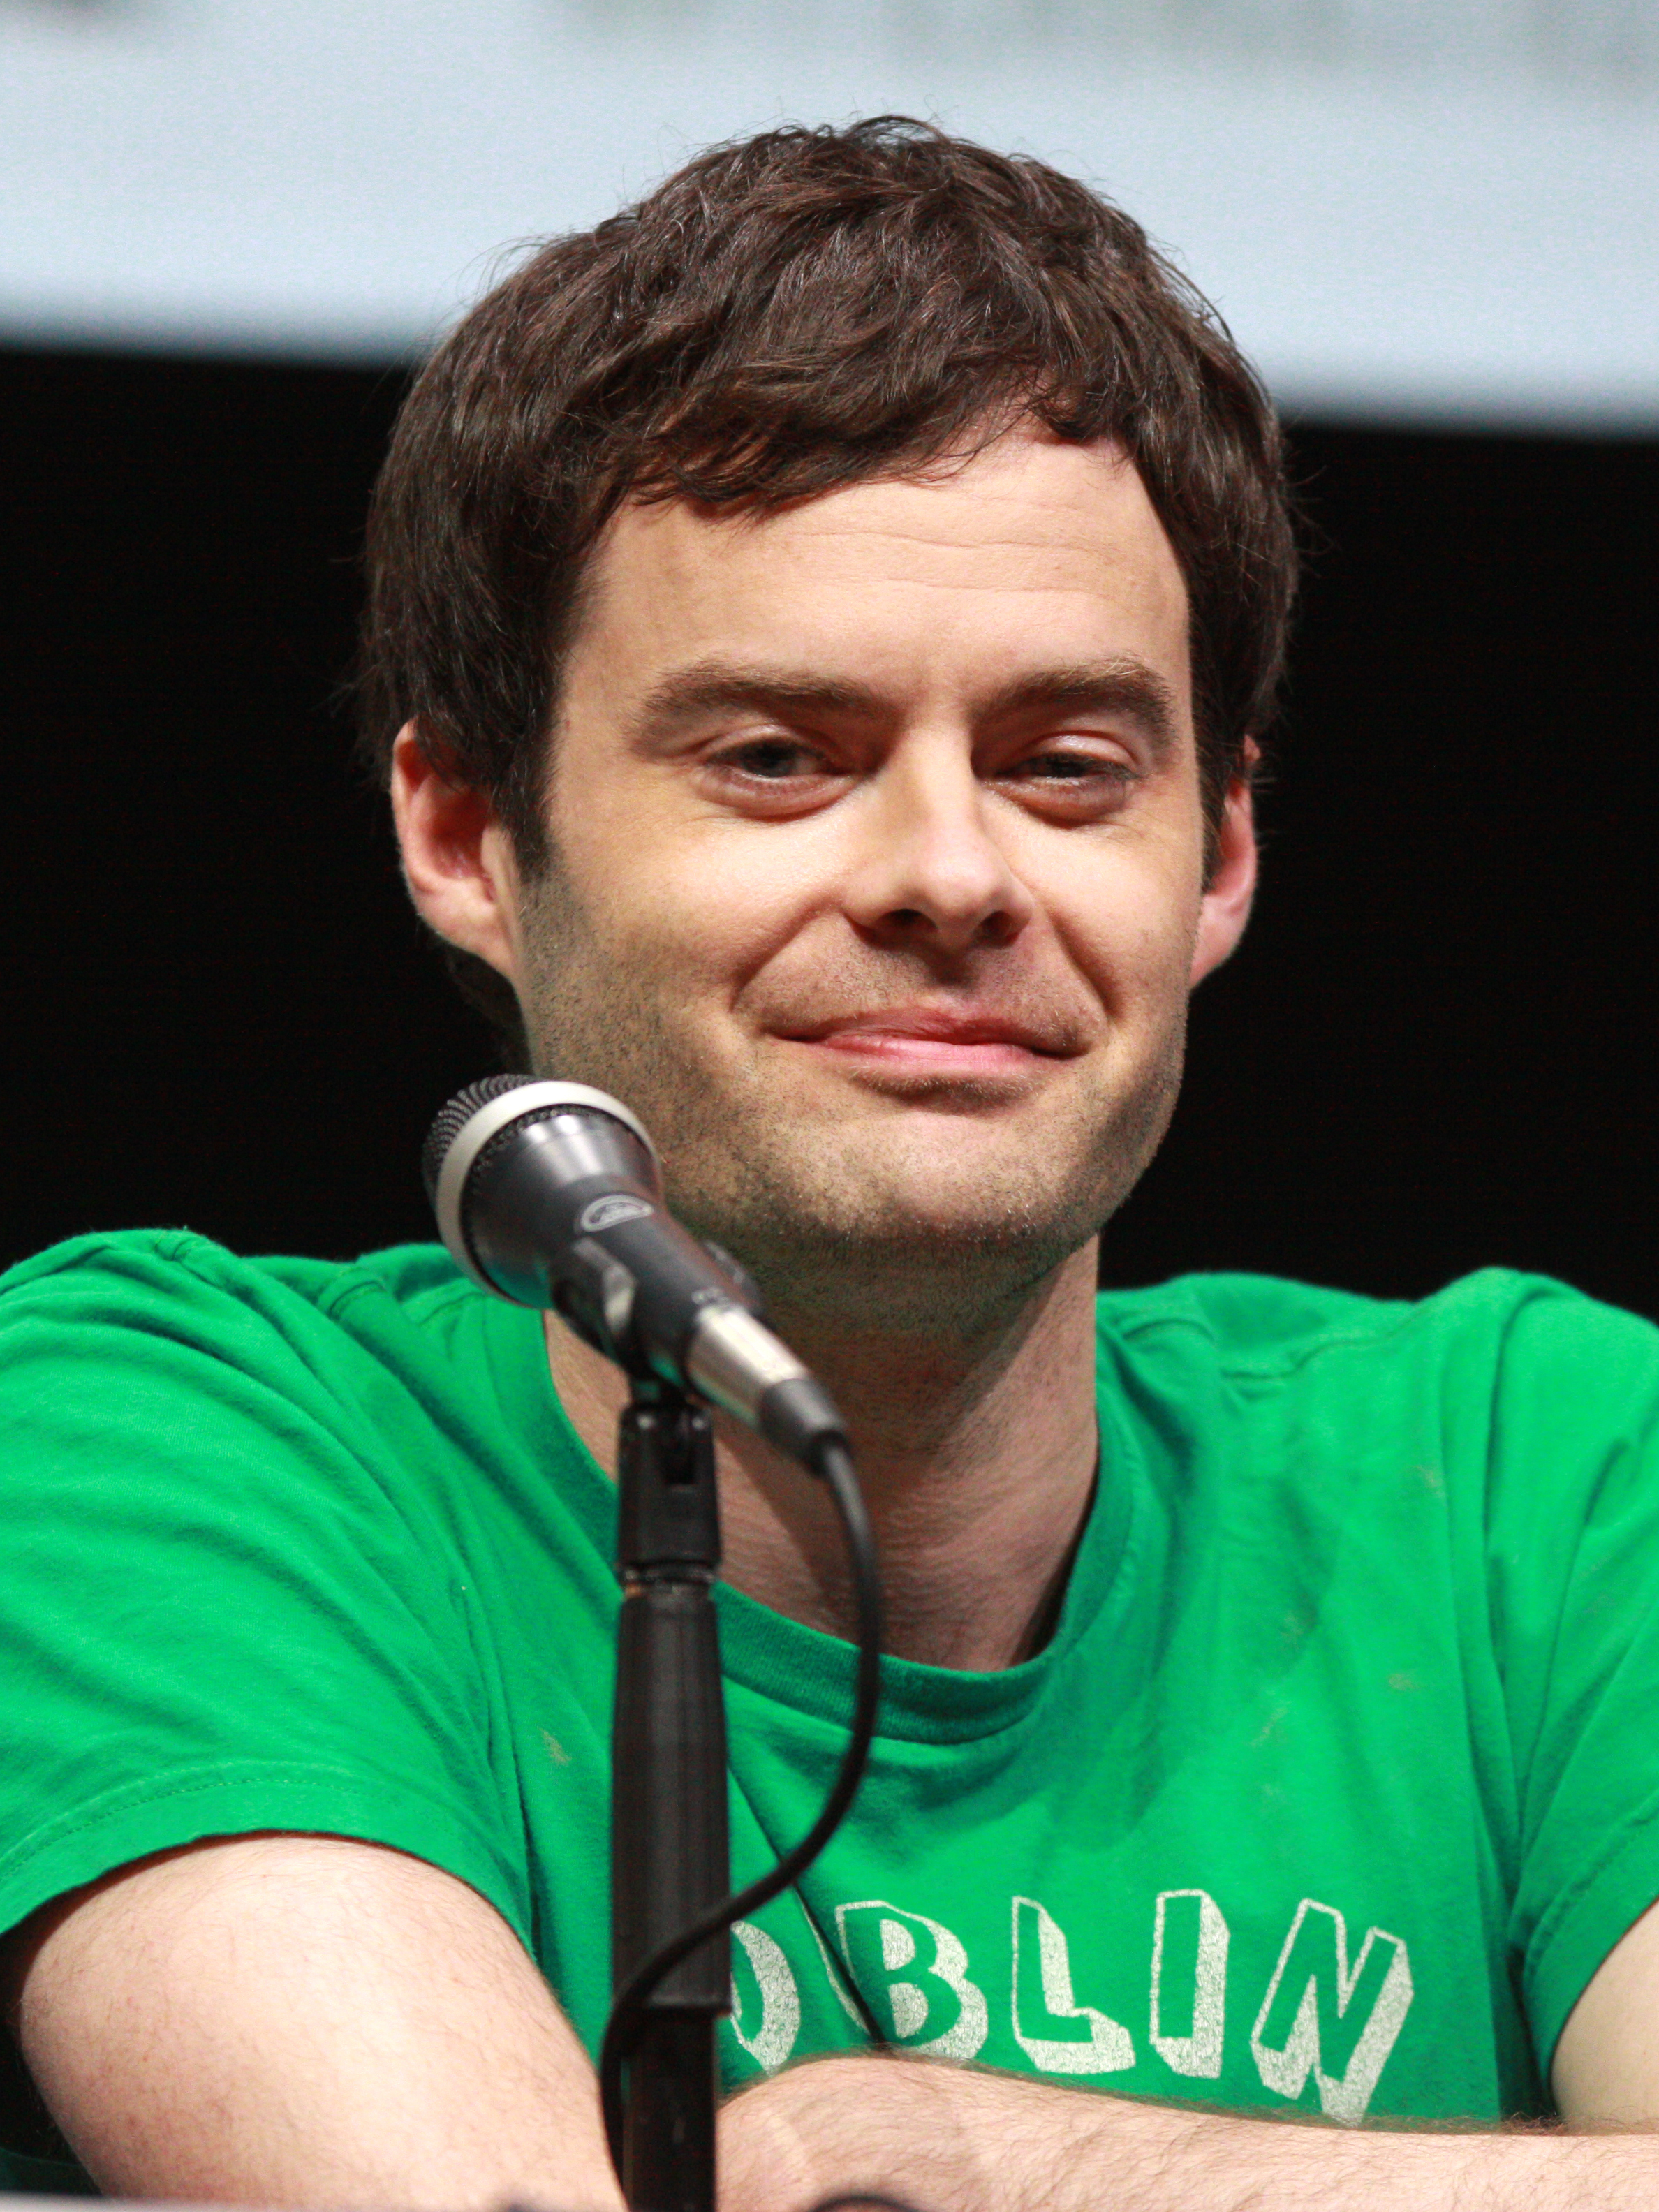 Bill Hader Simple English Wikipedia The Free Encyclopedia